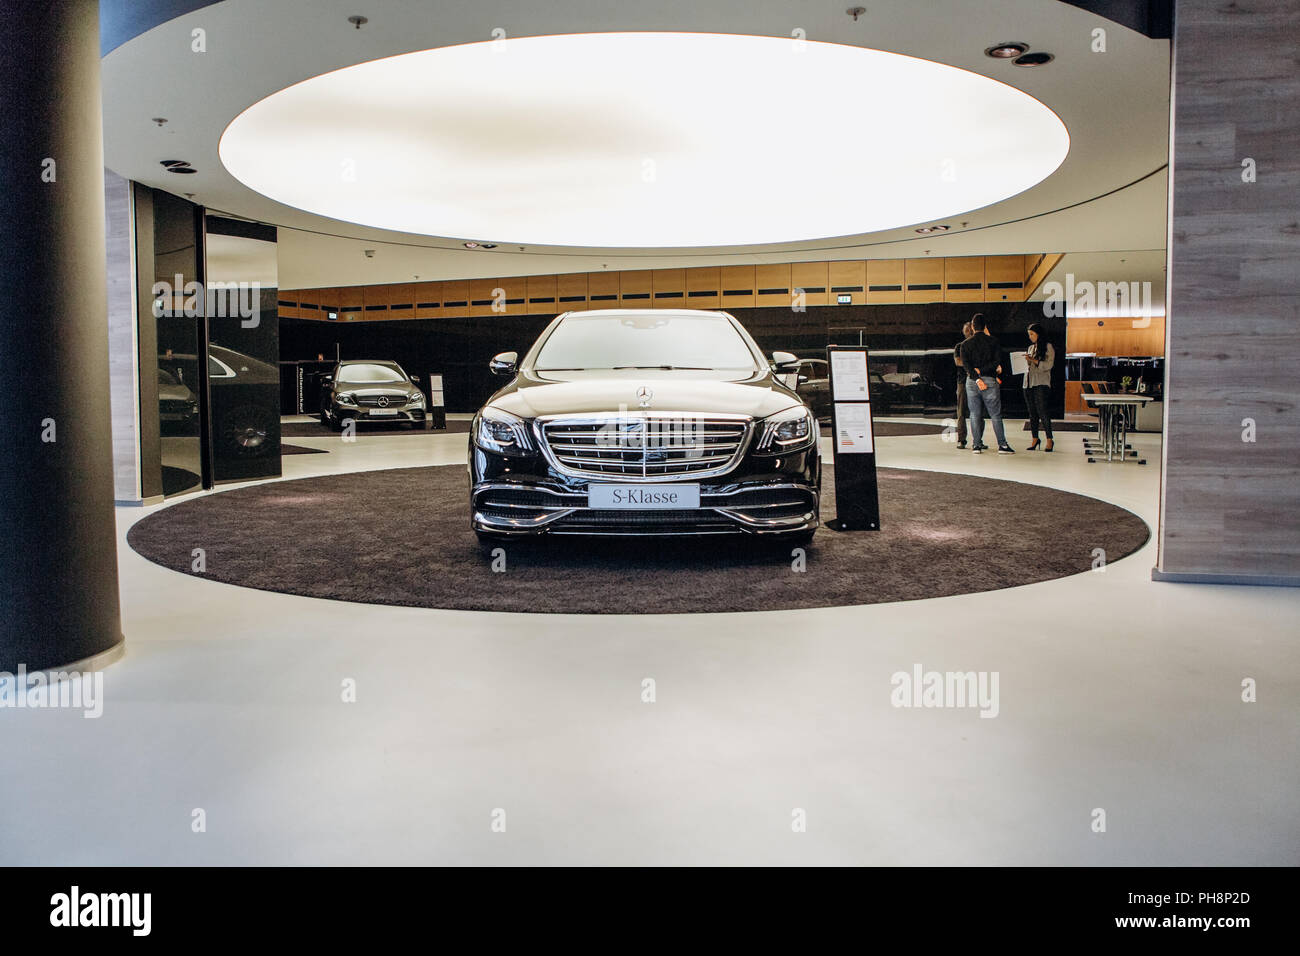 Berlin, August 29, 2018: Mercedes-Maybach car which is exhibited and sold in the official dealer's center in Berlin. Luxury branded expensive car. Stock Photo